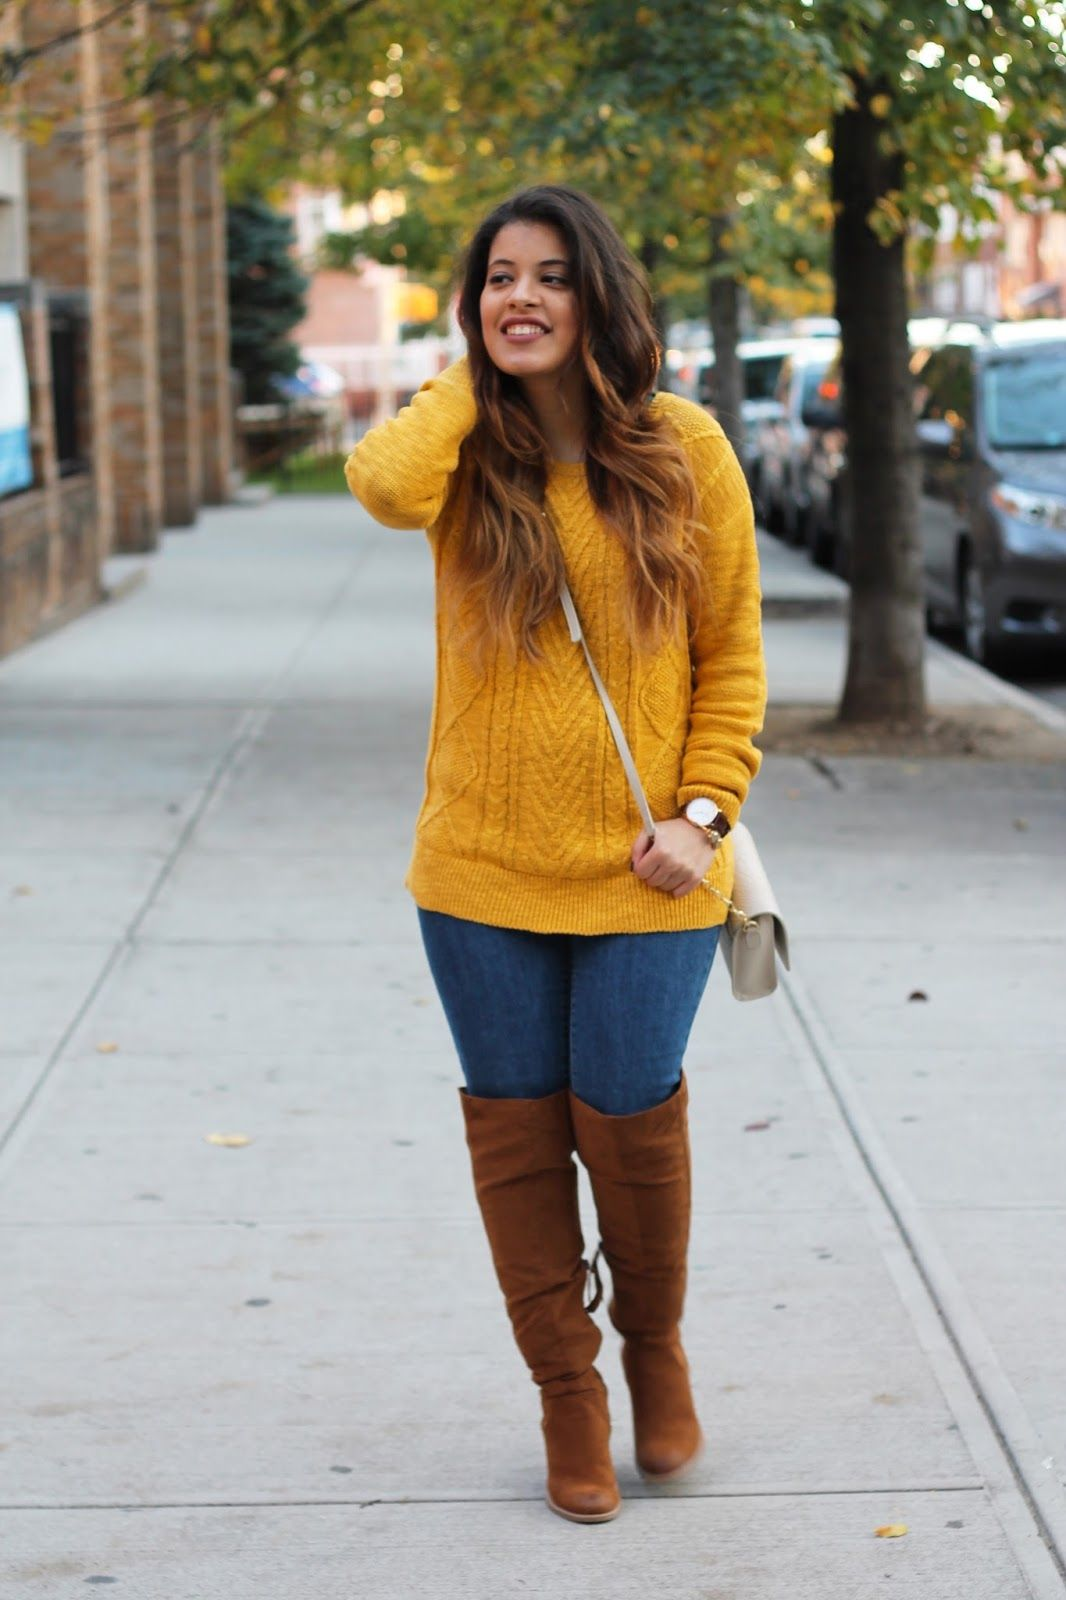 462132d4a57218 Mustard Yellow Pullover Sweater and Brown Over the Knee Boots. Fall style.  www.newyorkpetite.com